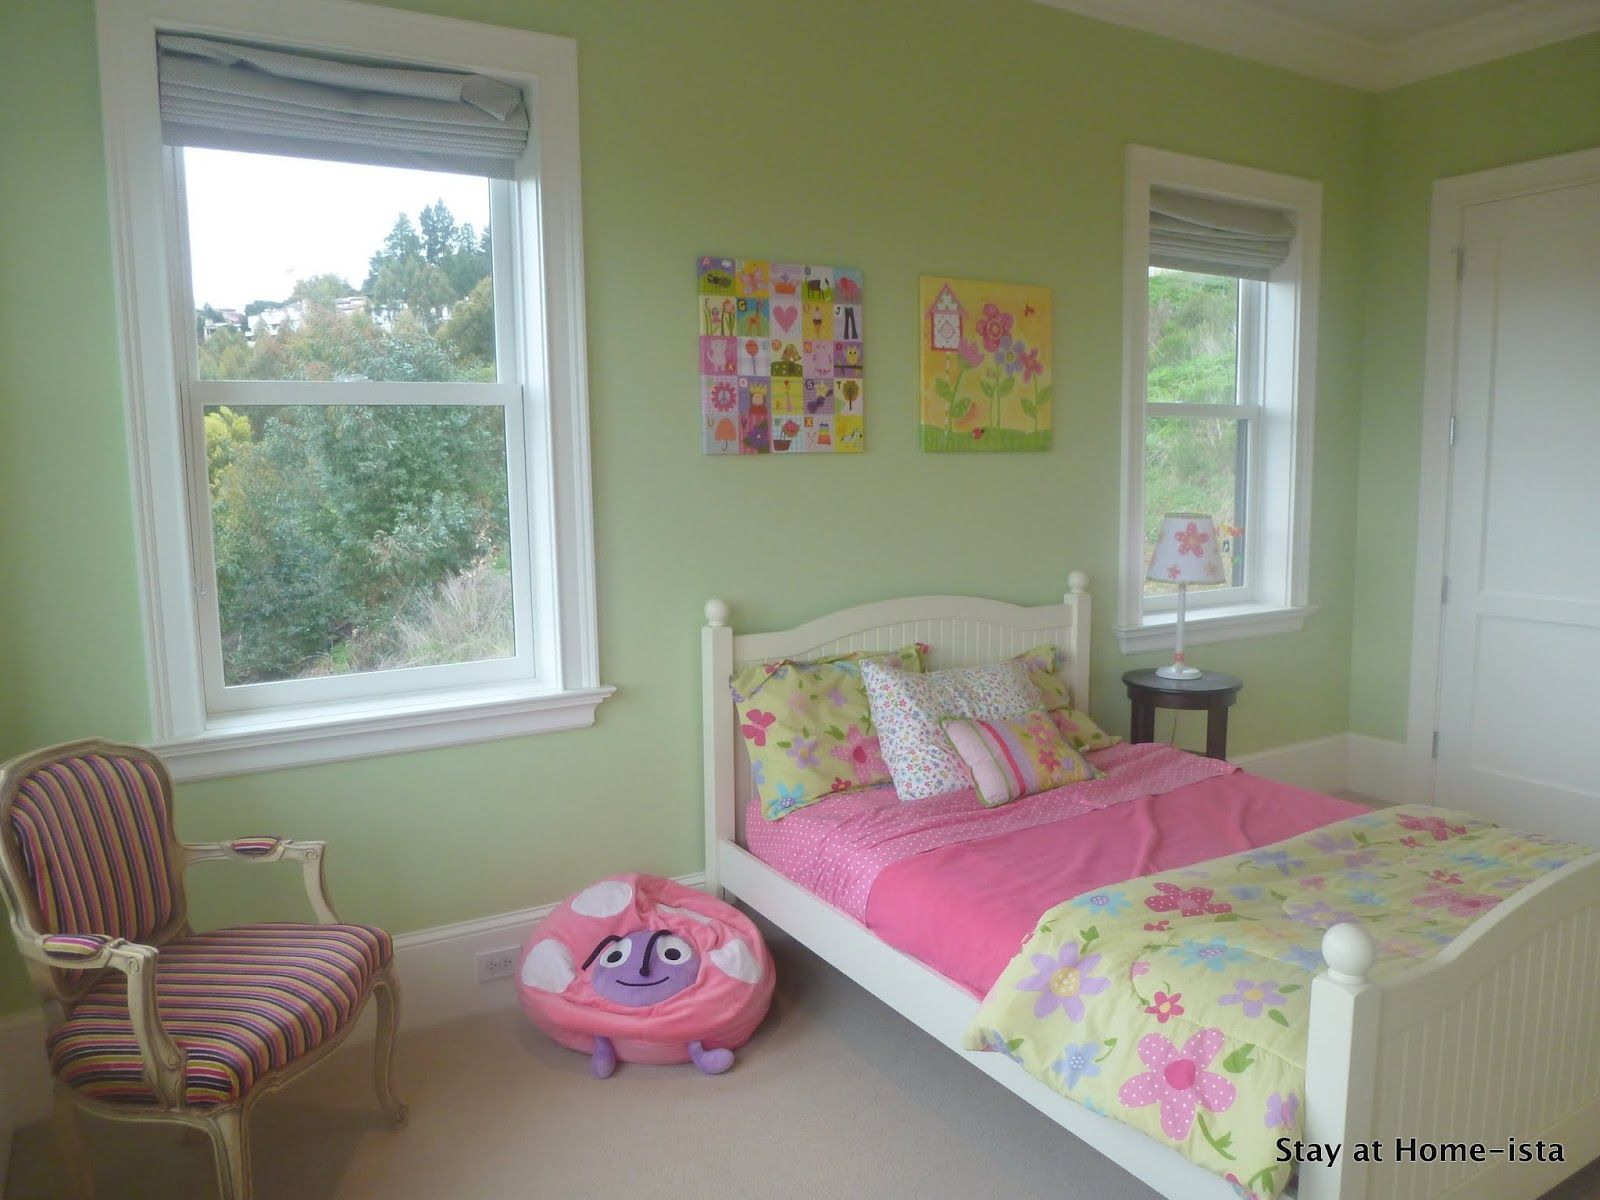 Bedrooms for girls green - Teens Bedroom Girl Bedroom Ideas Painting Lounge Chair Bedroom Ideas Cream Flooring For Bedroom Design